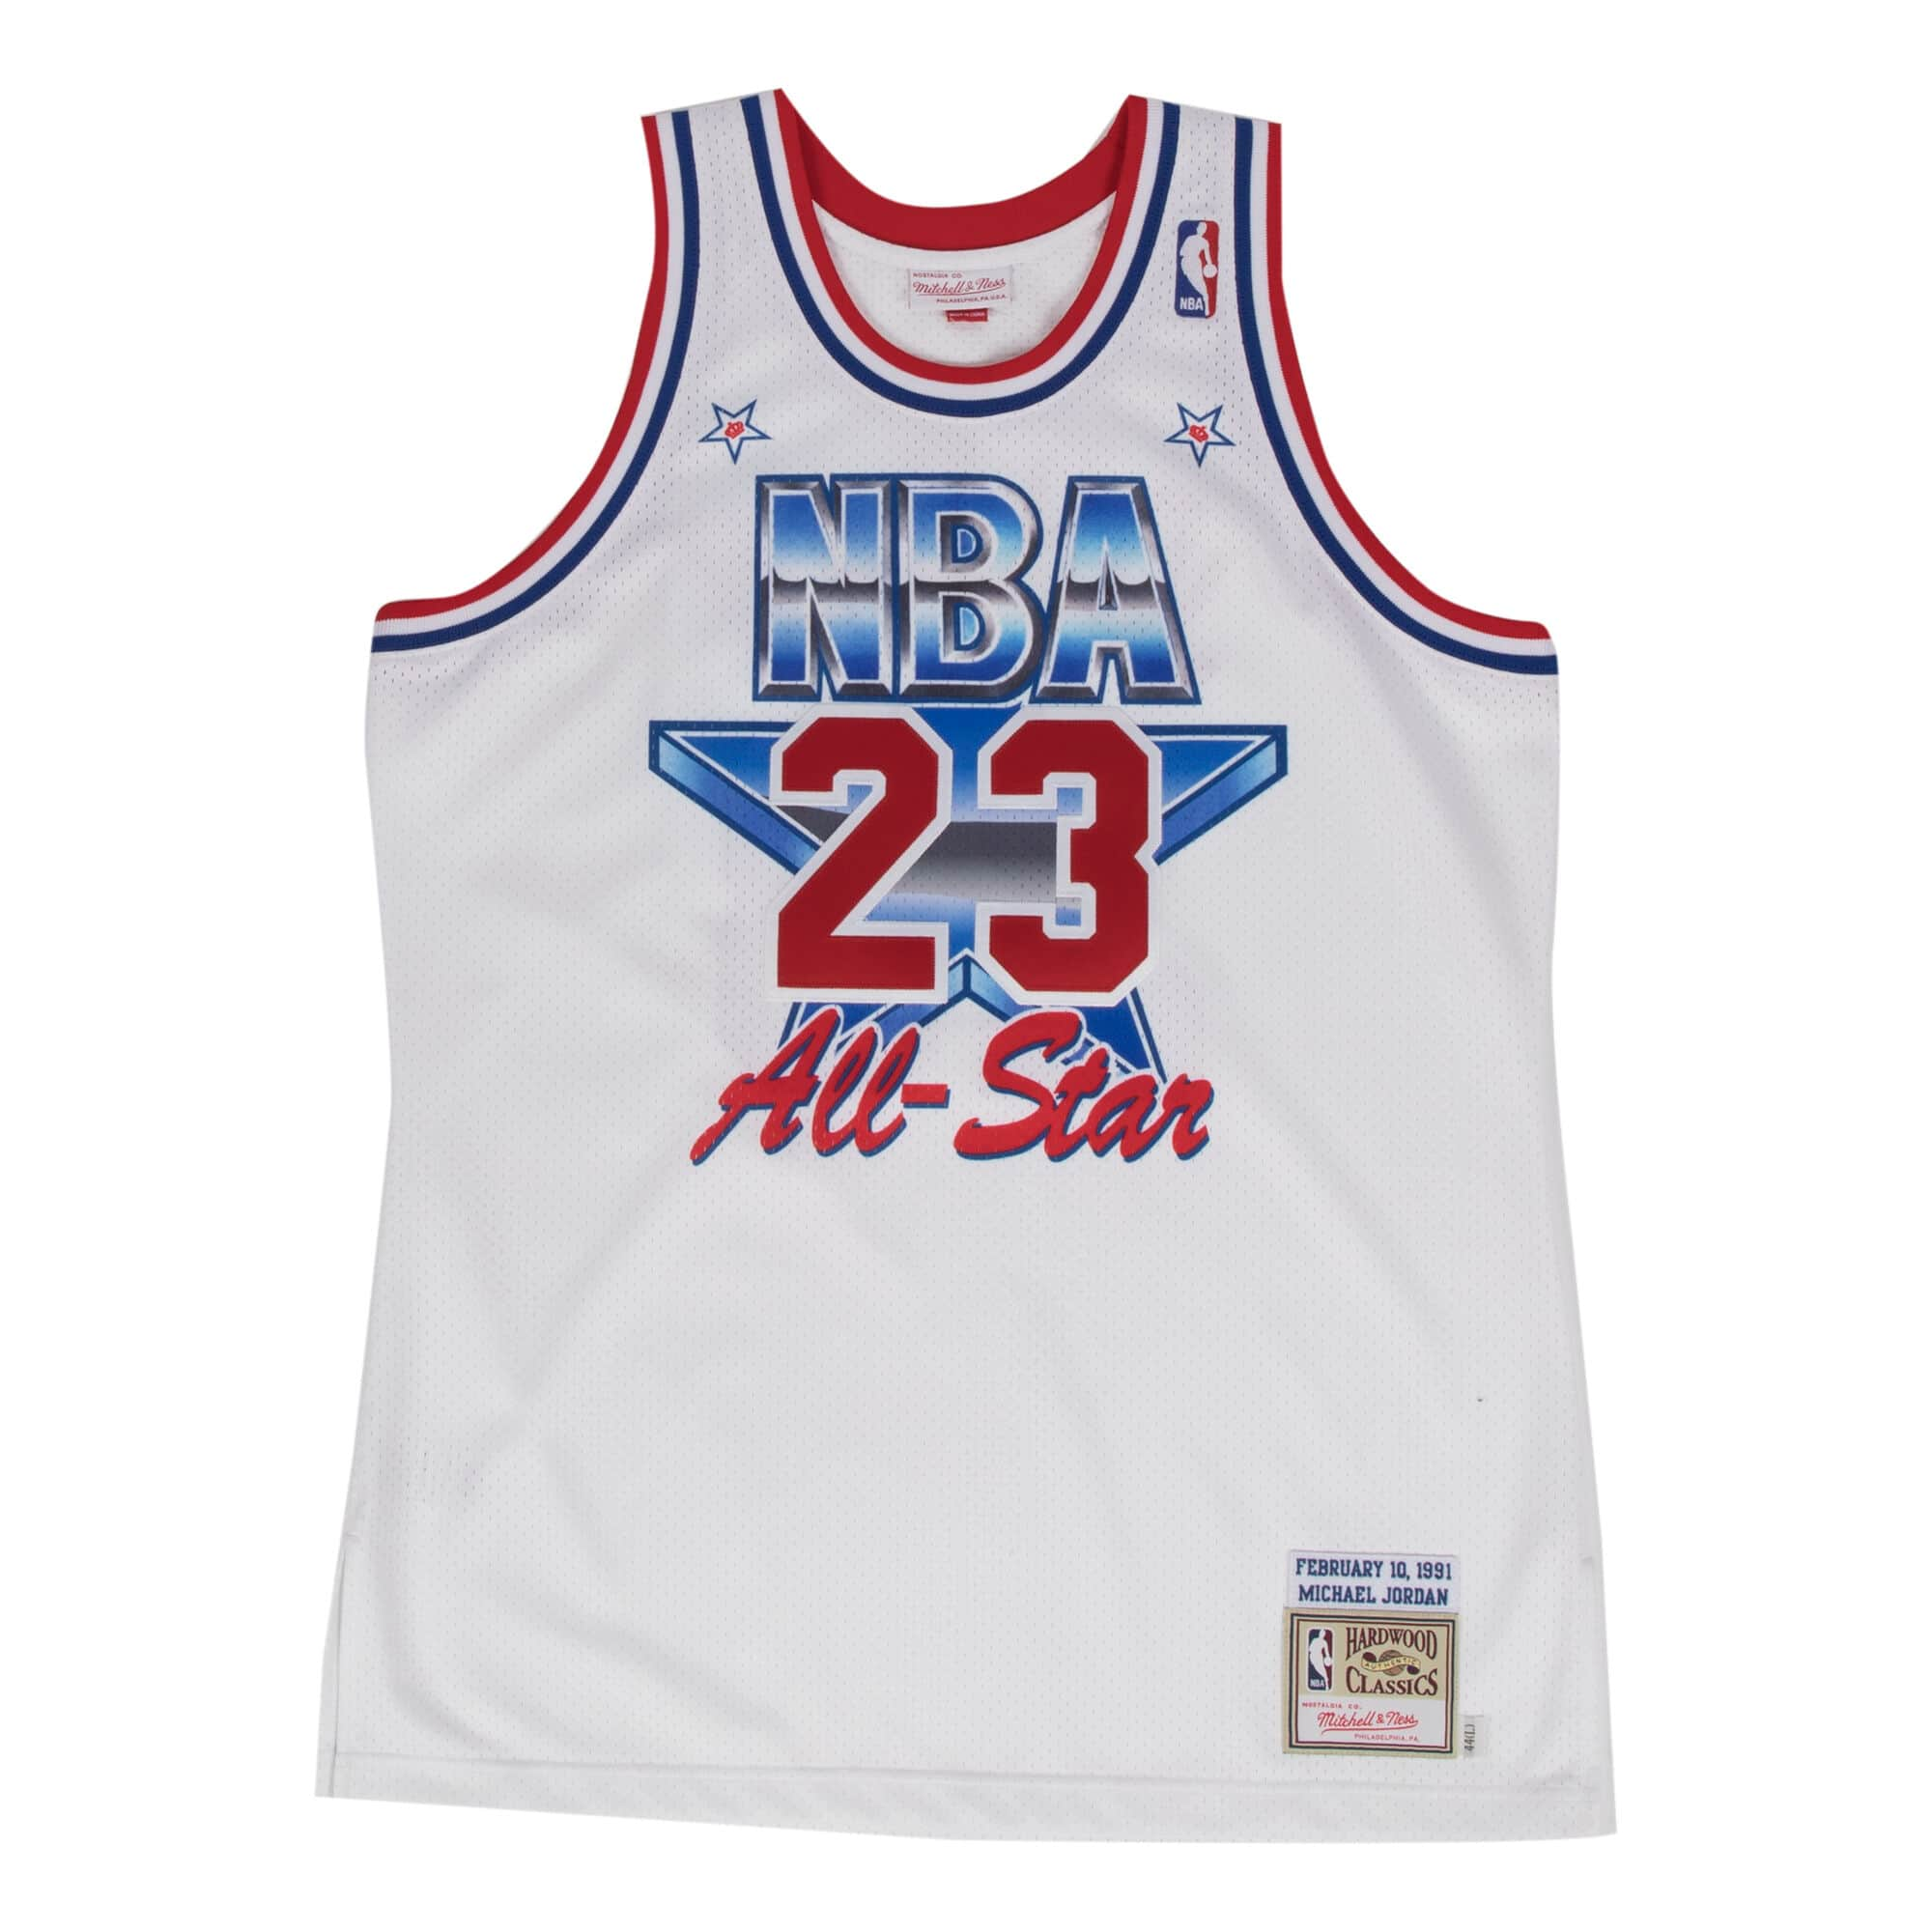 lowest price 63e42 b060a MITCHELL & NESS NBA ALL STAR EAST JERSEY 91 MICHAEL JORDAN